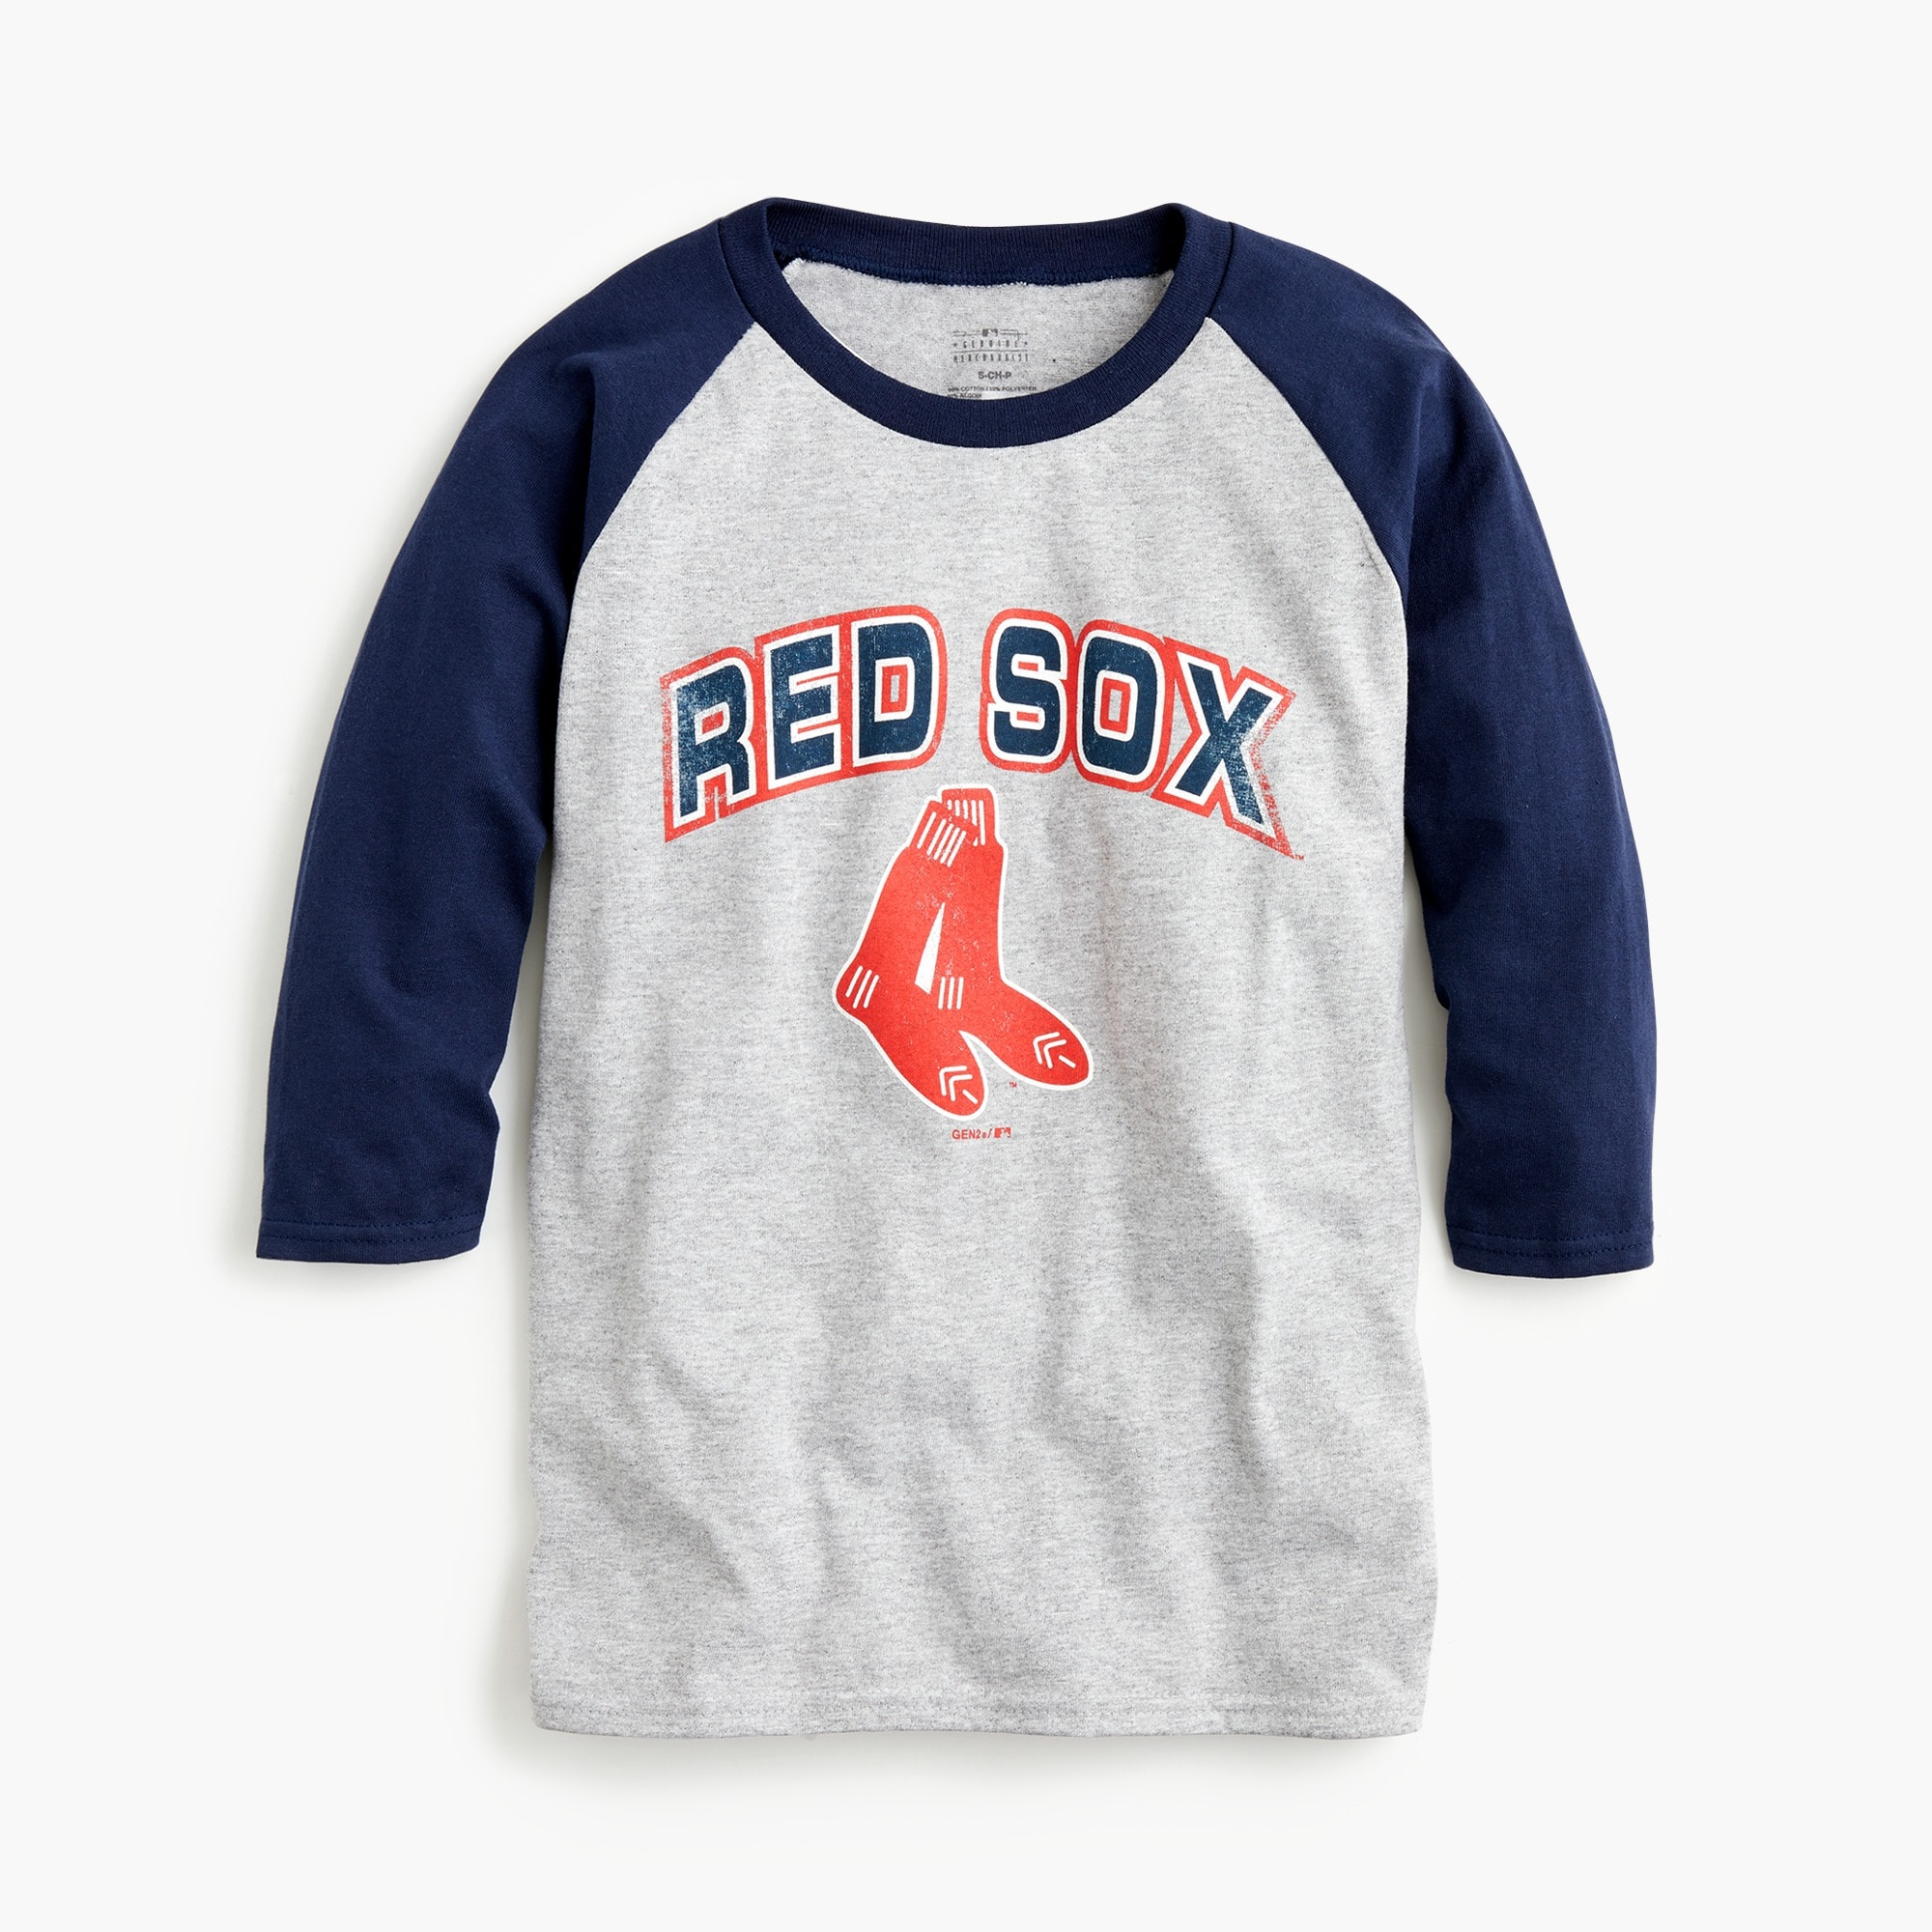 boys Kids' Boston Red Sox baseball T-shirt